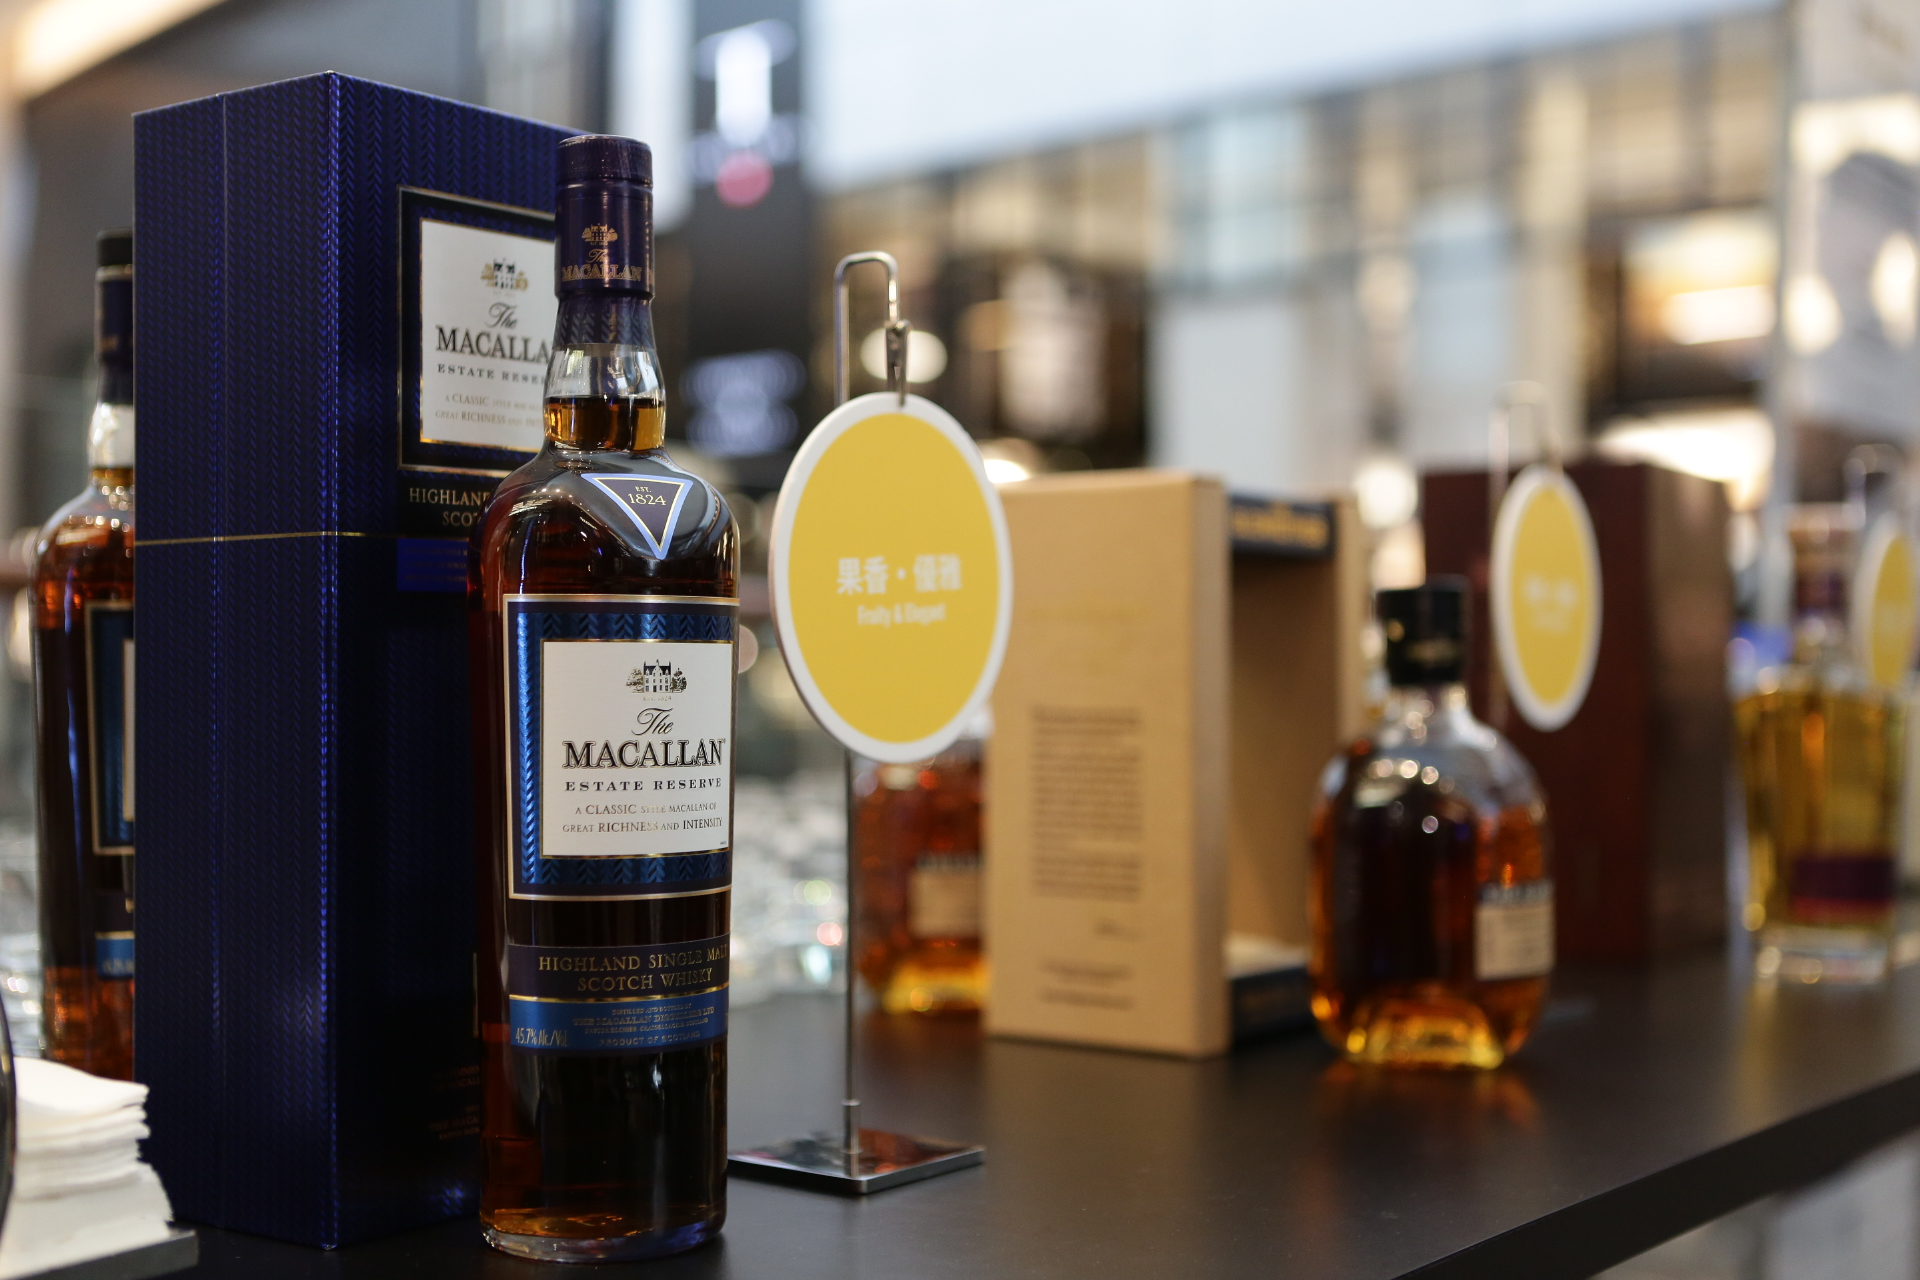 Guests enjoyed Fruity & Elegant whiskies such as The Macallan Estate Reserve  - DFNI